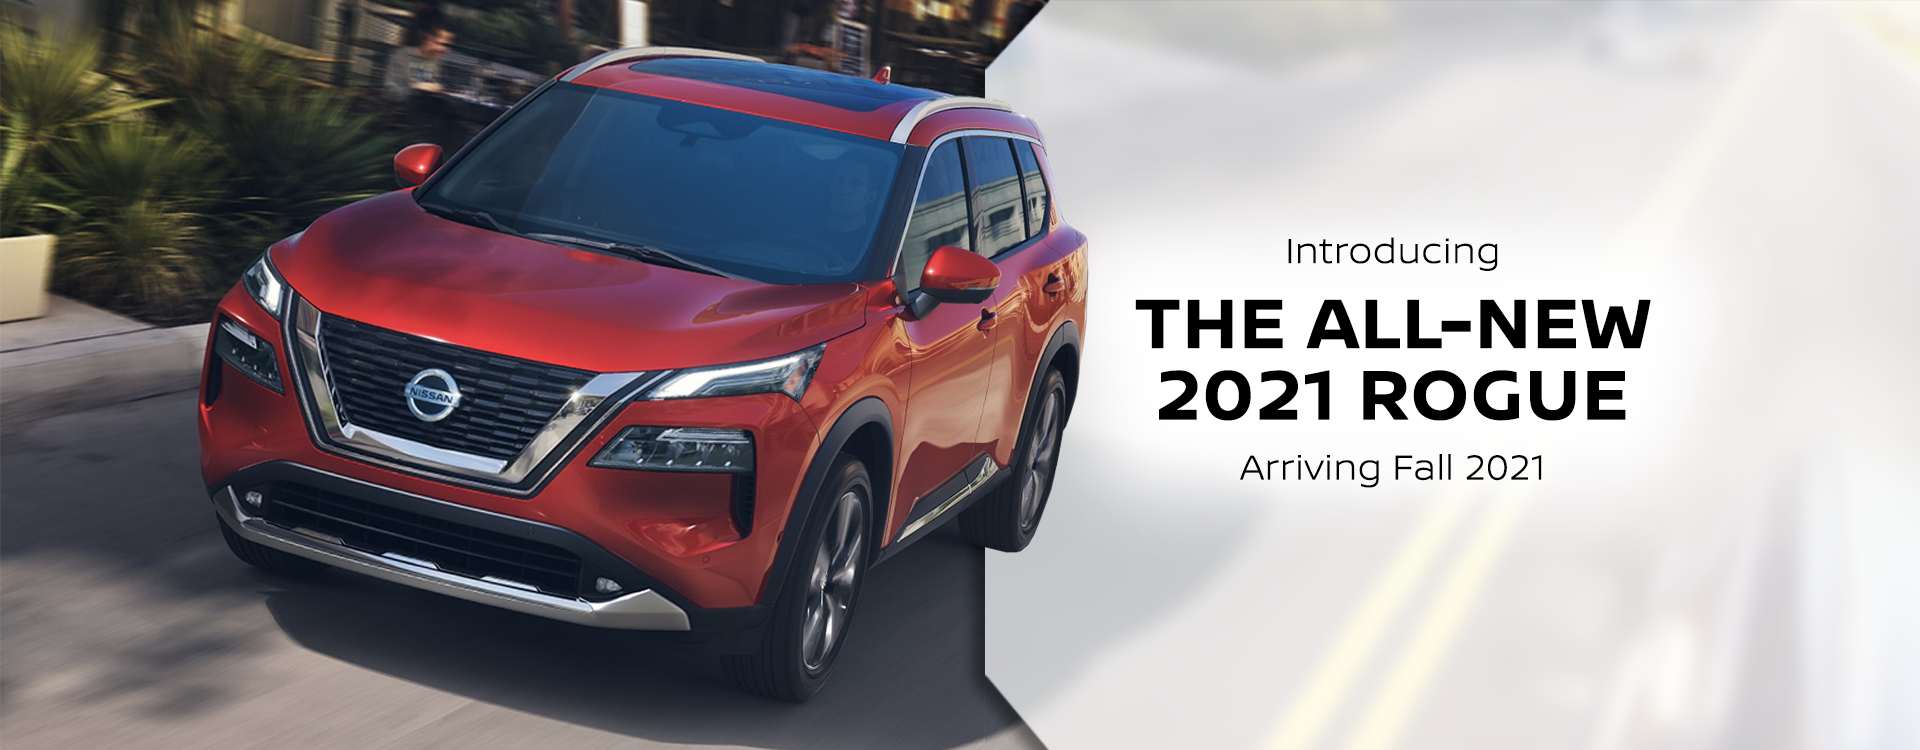 The All-New 2021 Nissan Rogue